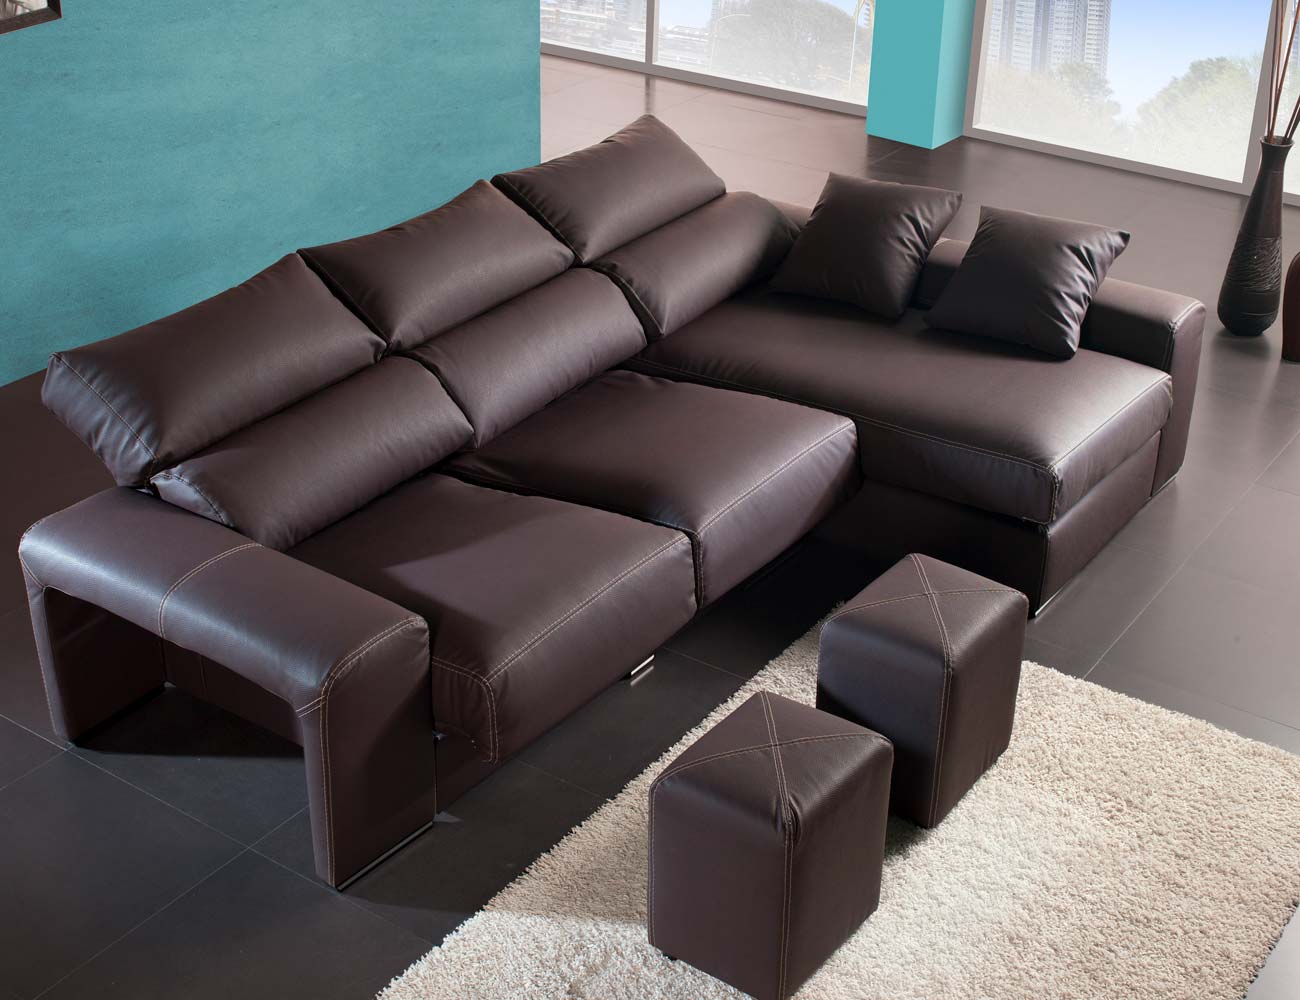 Sofa chaiselongue moderno polipiel chocolate poufs taburetes58